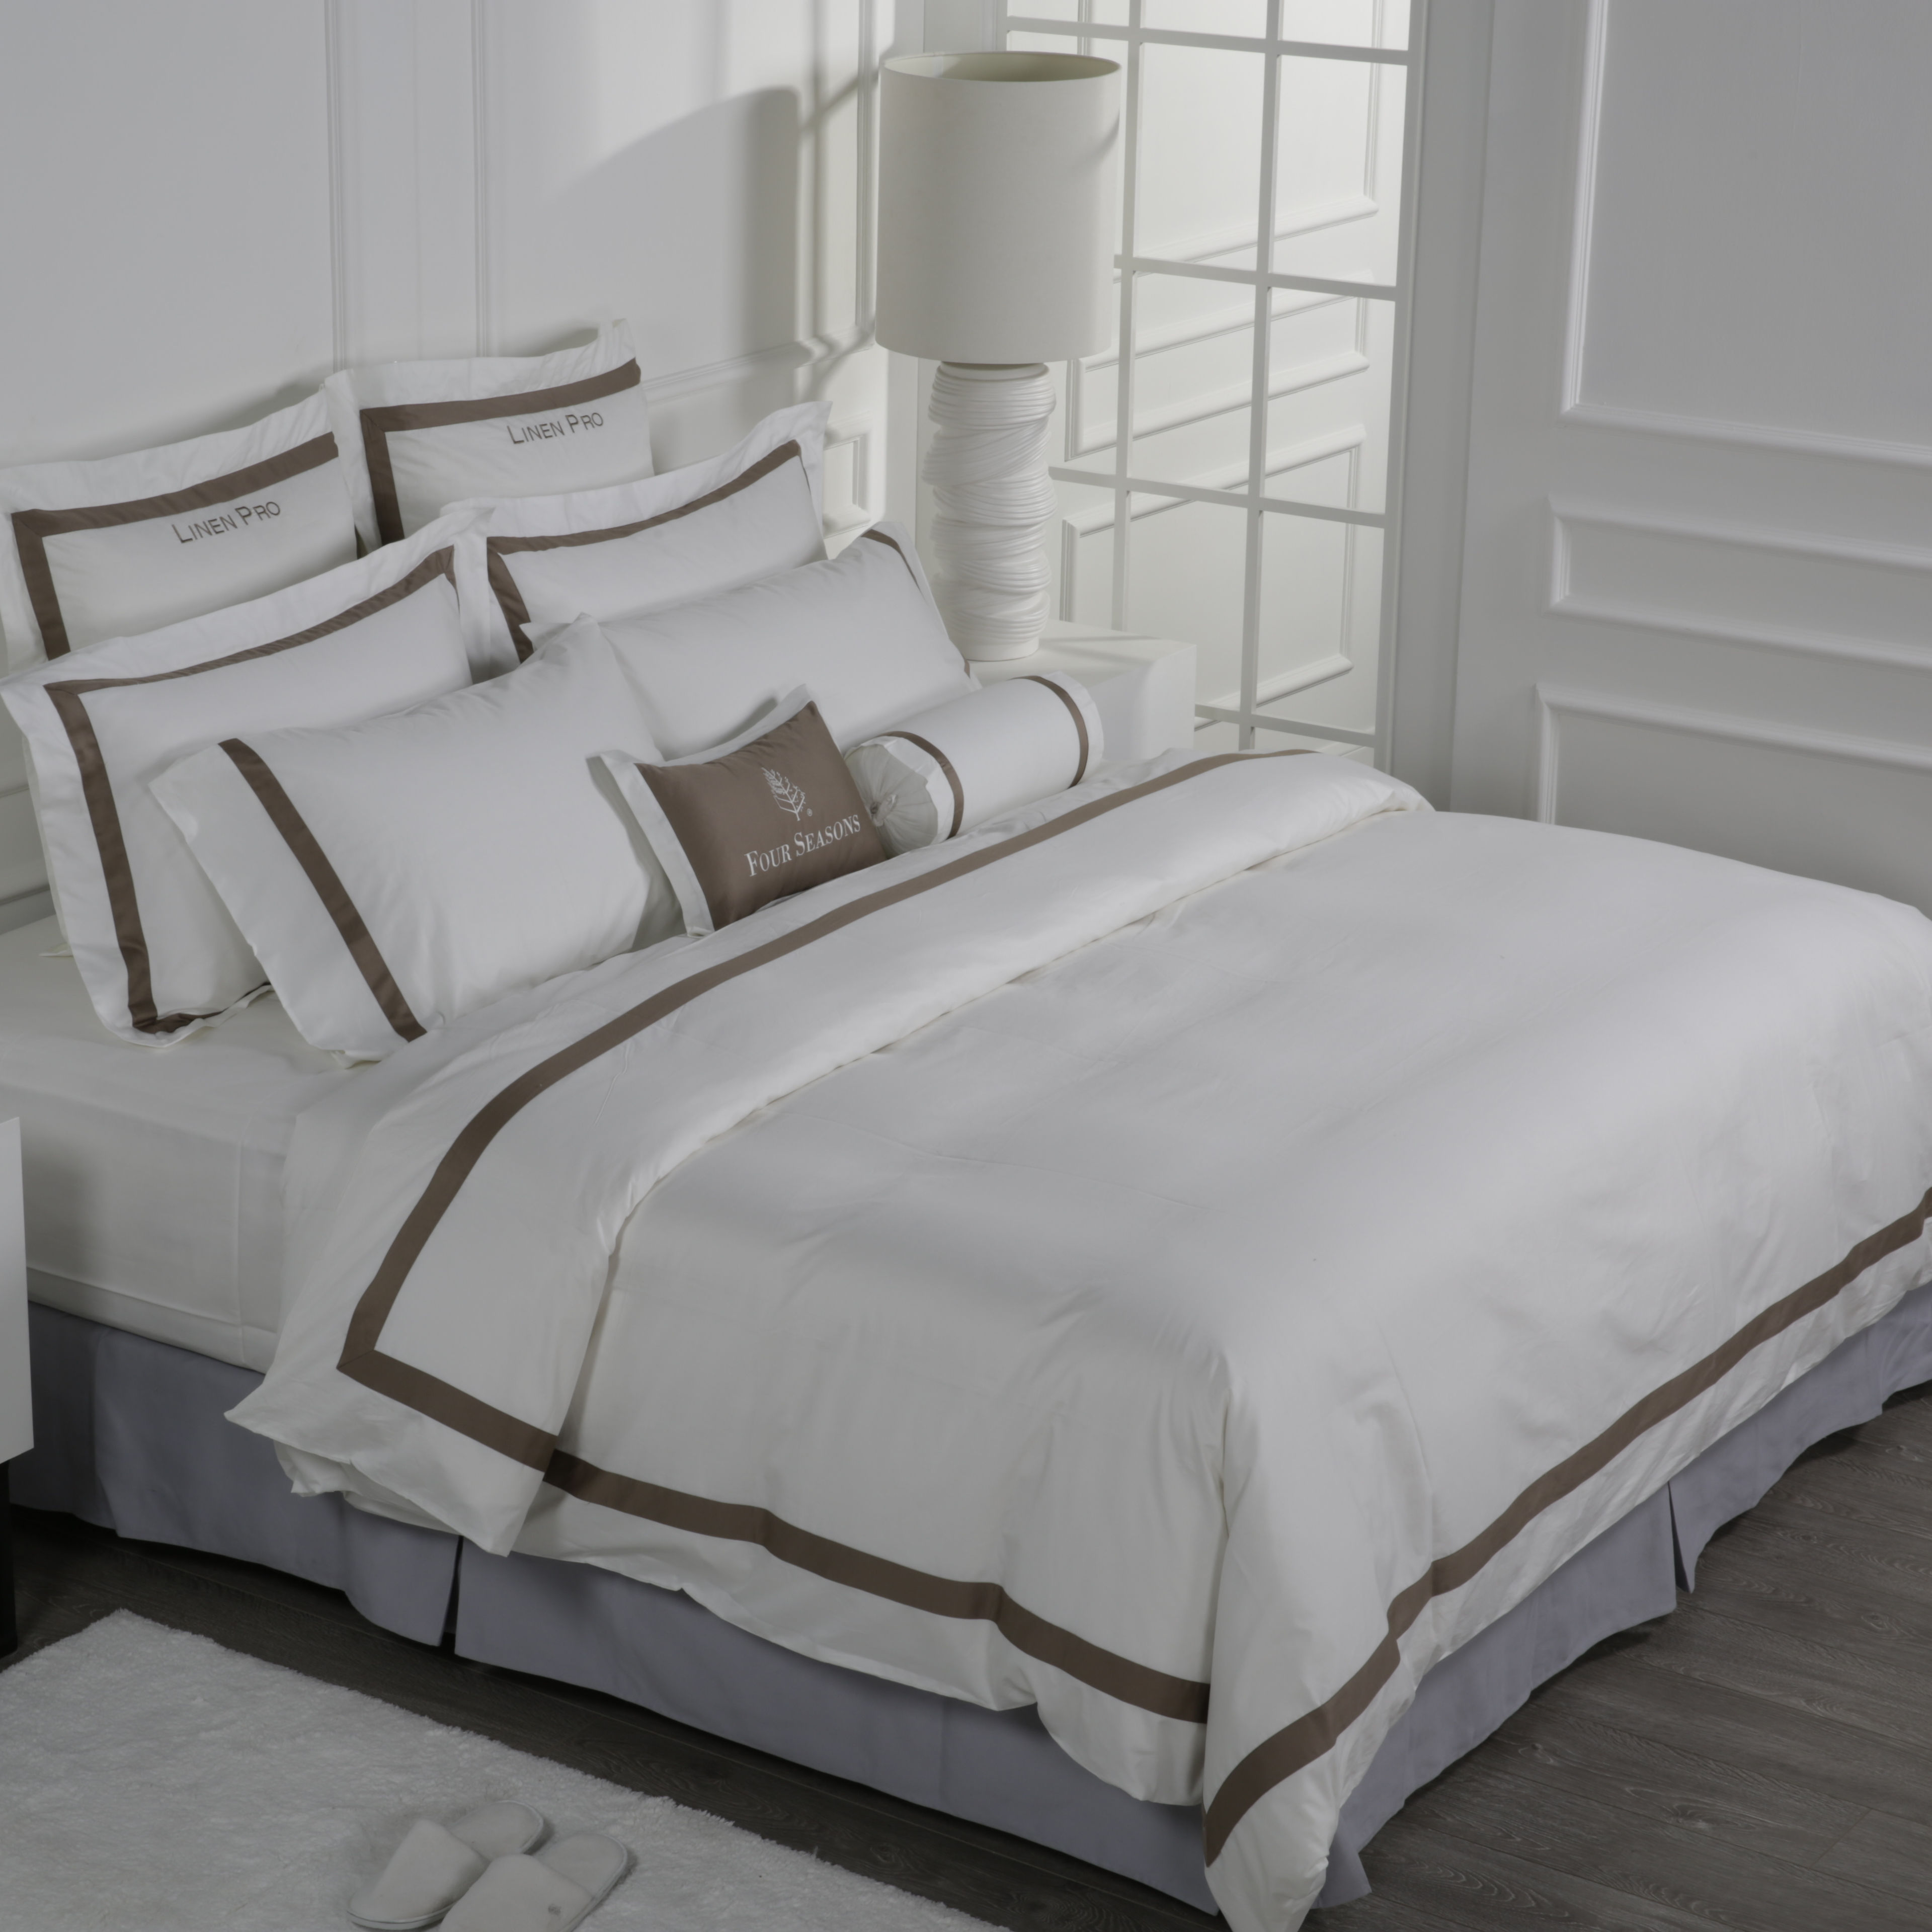 Wholesale Comforter Set Bedding Design Double Size 100 Cotton Plain Hotel Bed Sheets